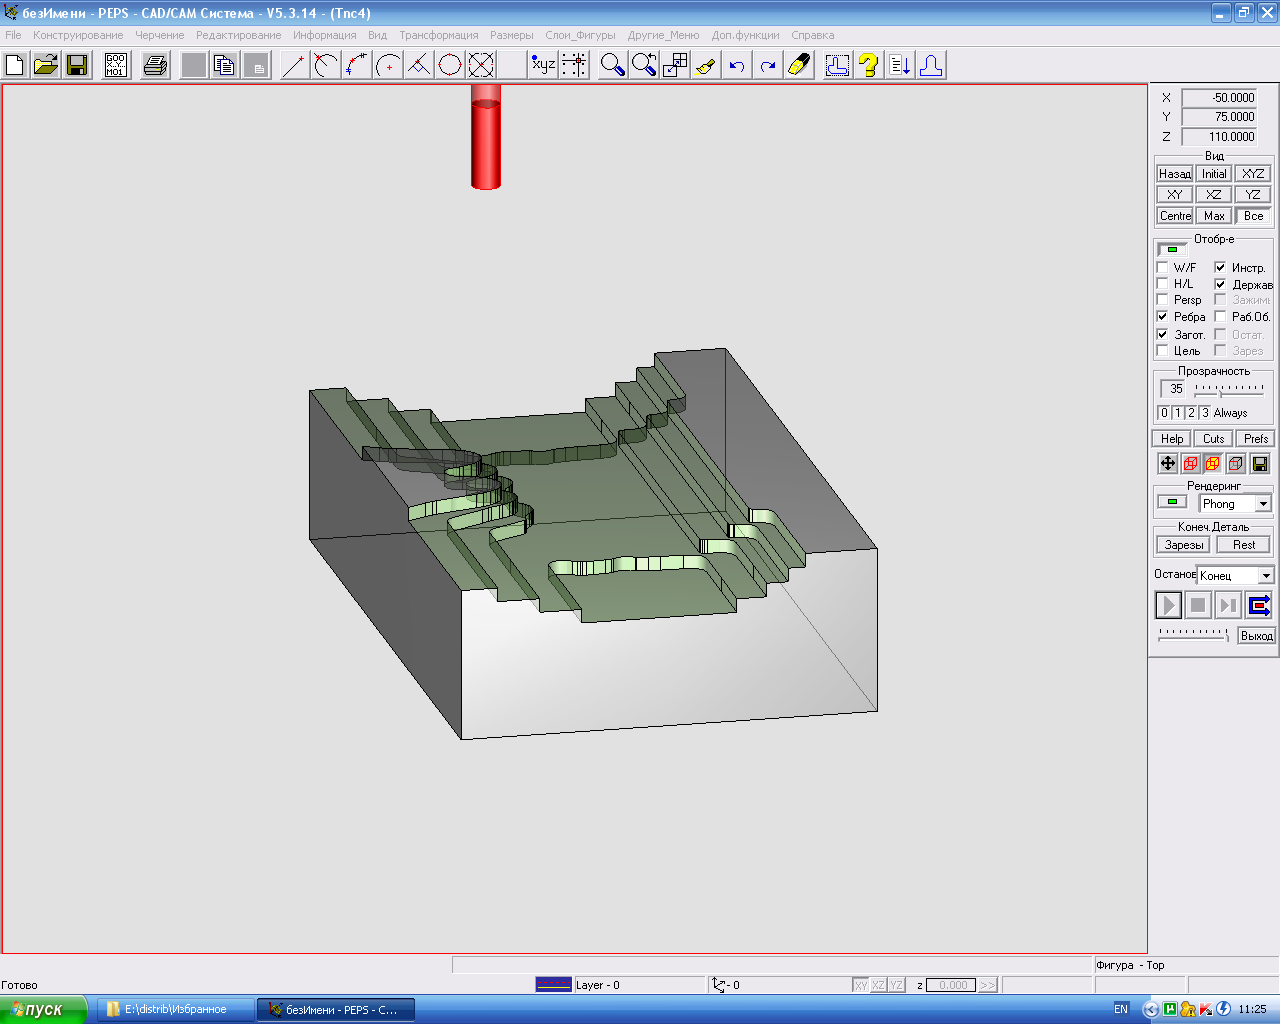 Machining with PEPS CAD CAM system 5.3.14 ful crack